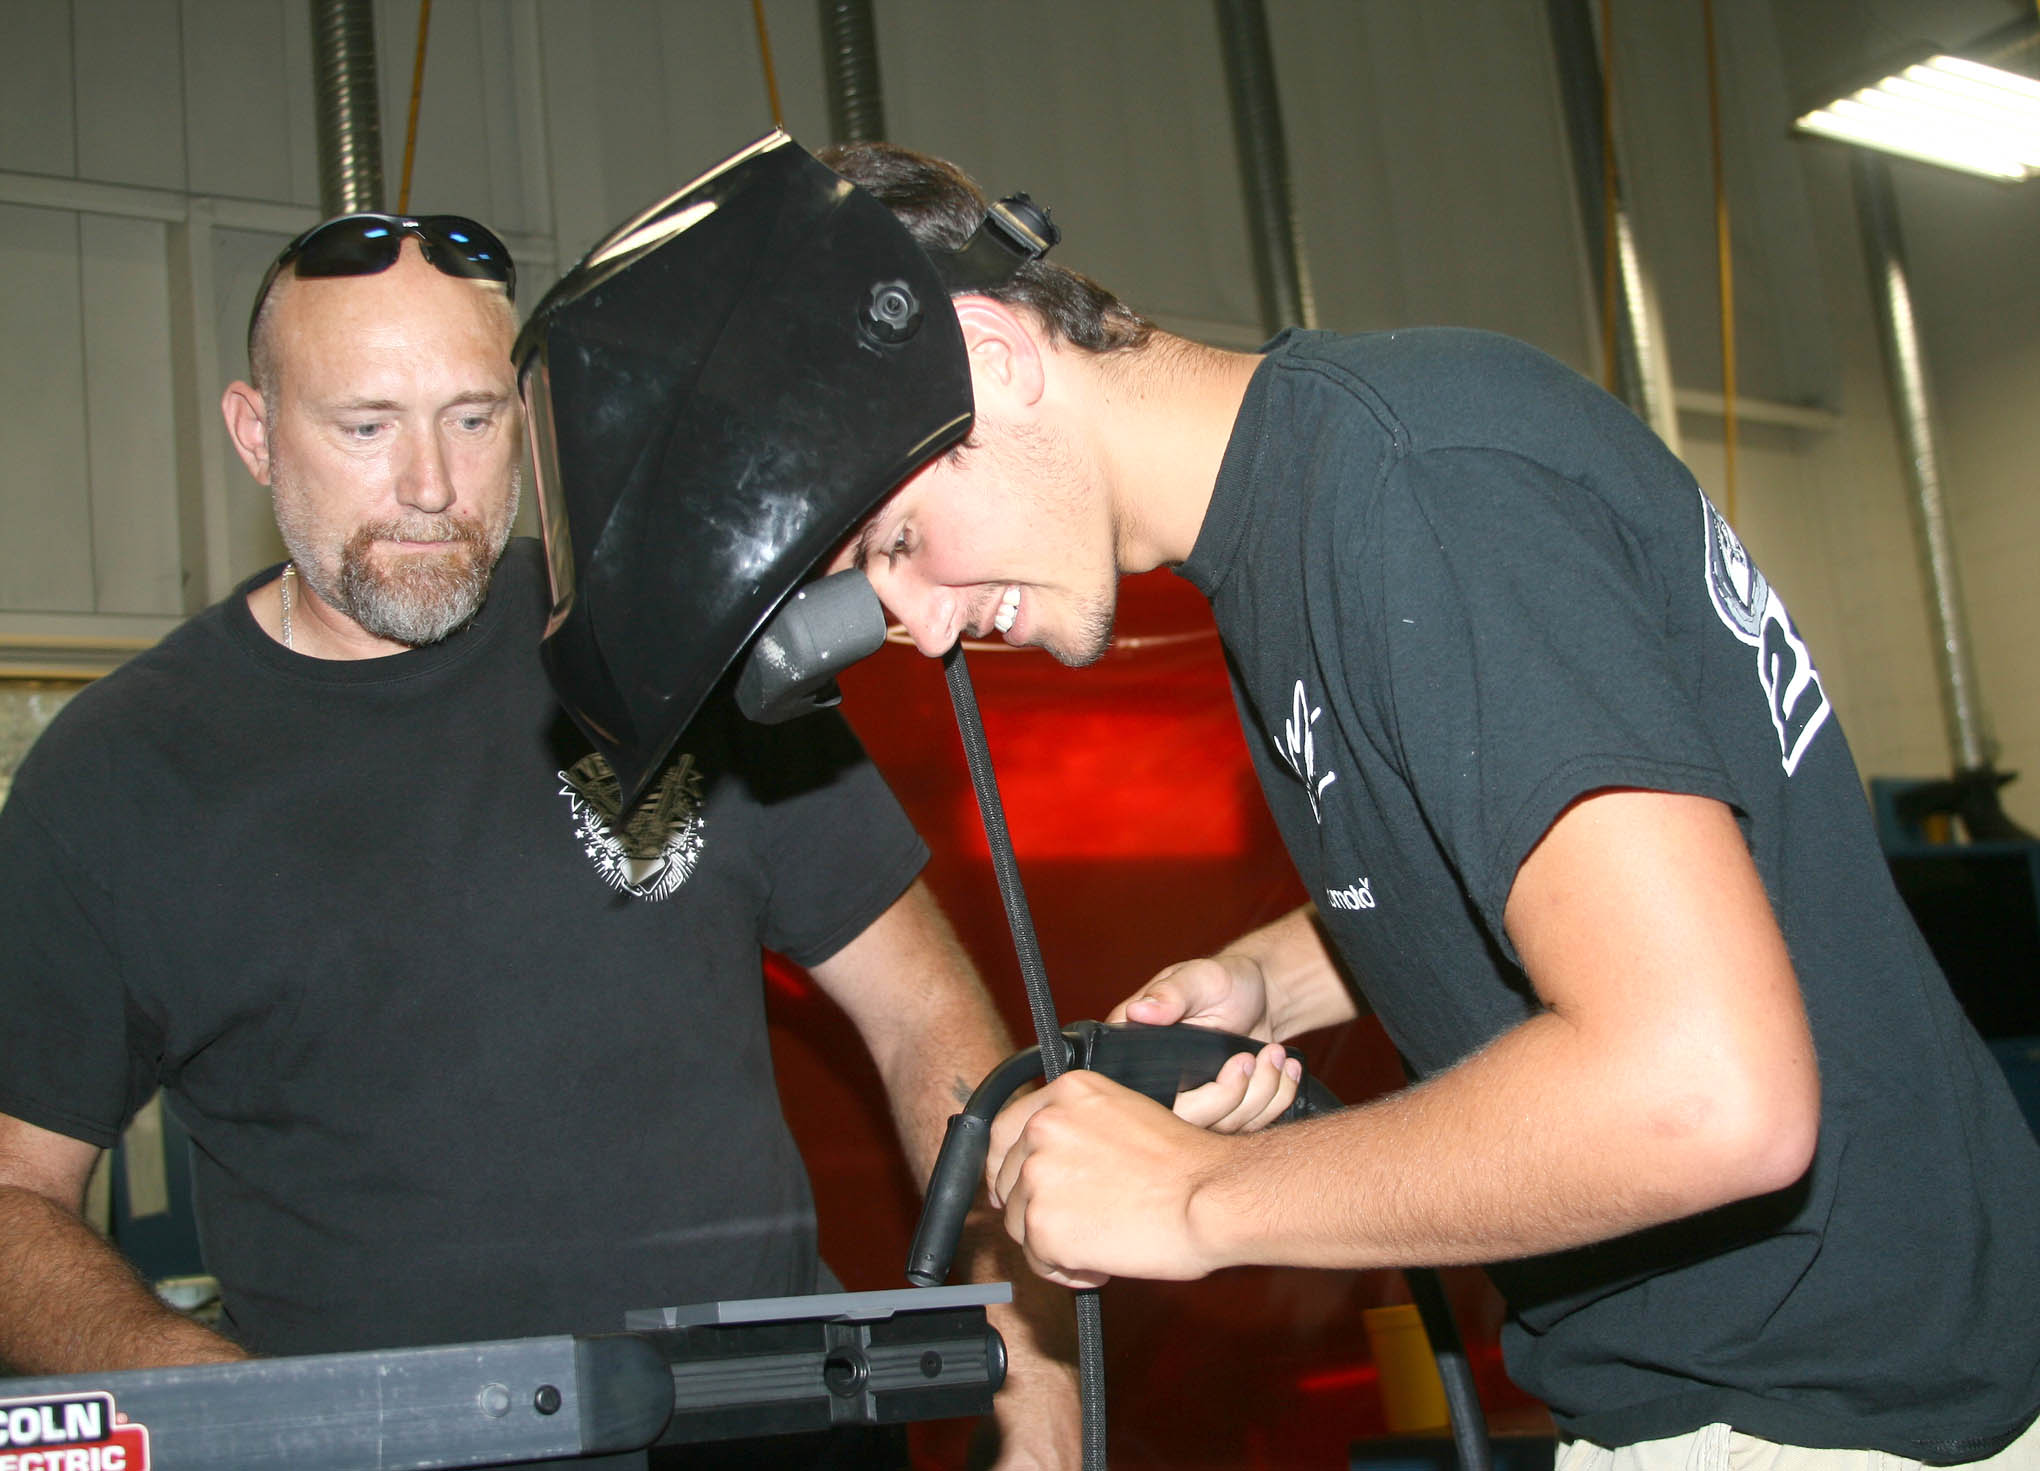 Click to enlarge,  J.C. Dooley (right) works at a welding simulator while Central Carolina Community College welding student Danny Collins watches during National Manufacturing Day at CCCC's Dr. Paul Howard and Dr. Barbara James Innovation Center.